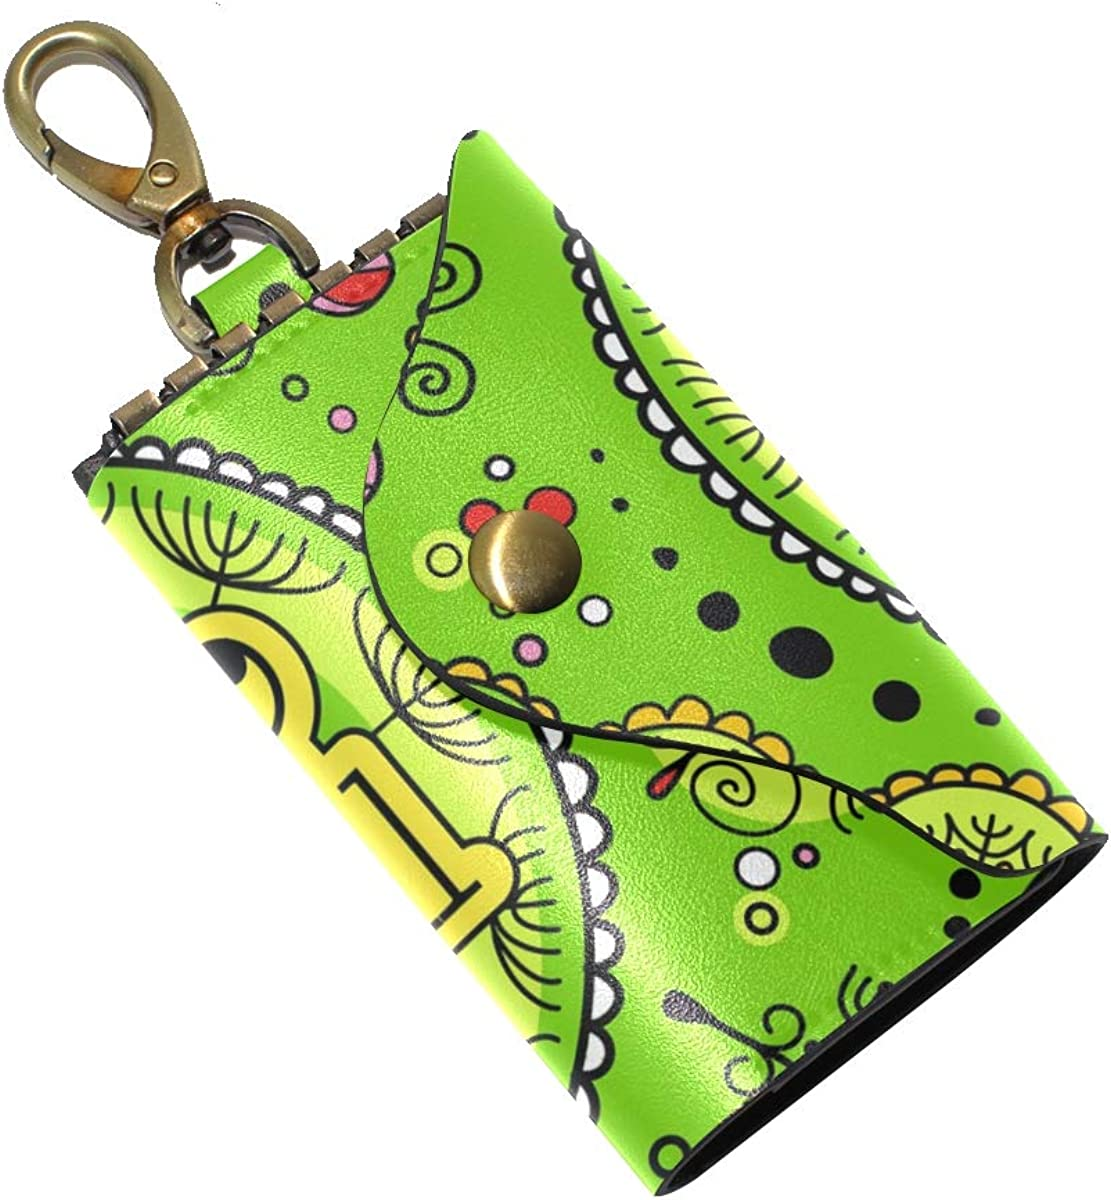 KEAKIA Green Floral Leather Key Case Wallets Tri-fold Key Holder Keychains with 6 Hooks 2 Slot Snap Closure for Men Women